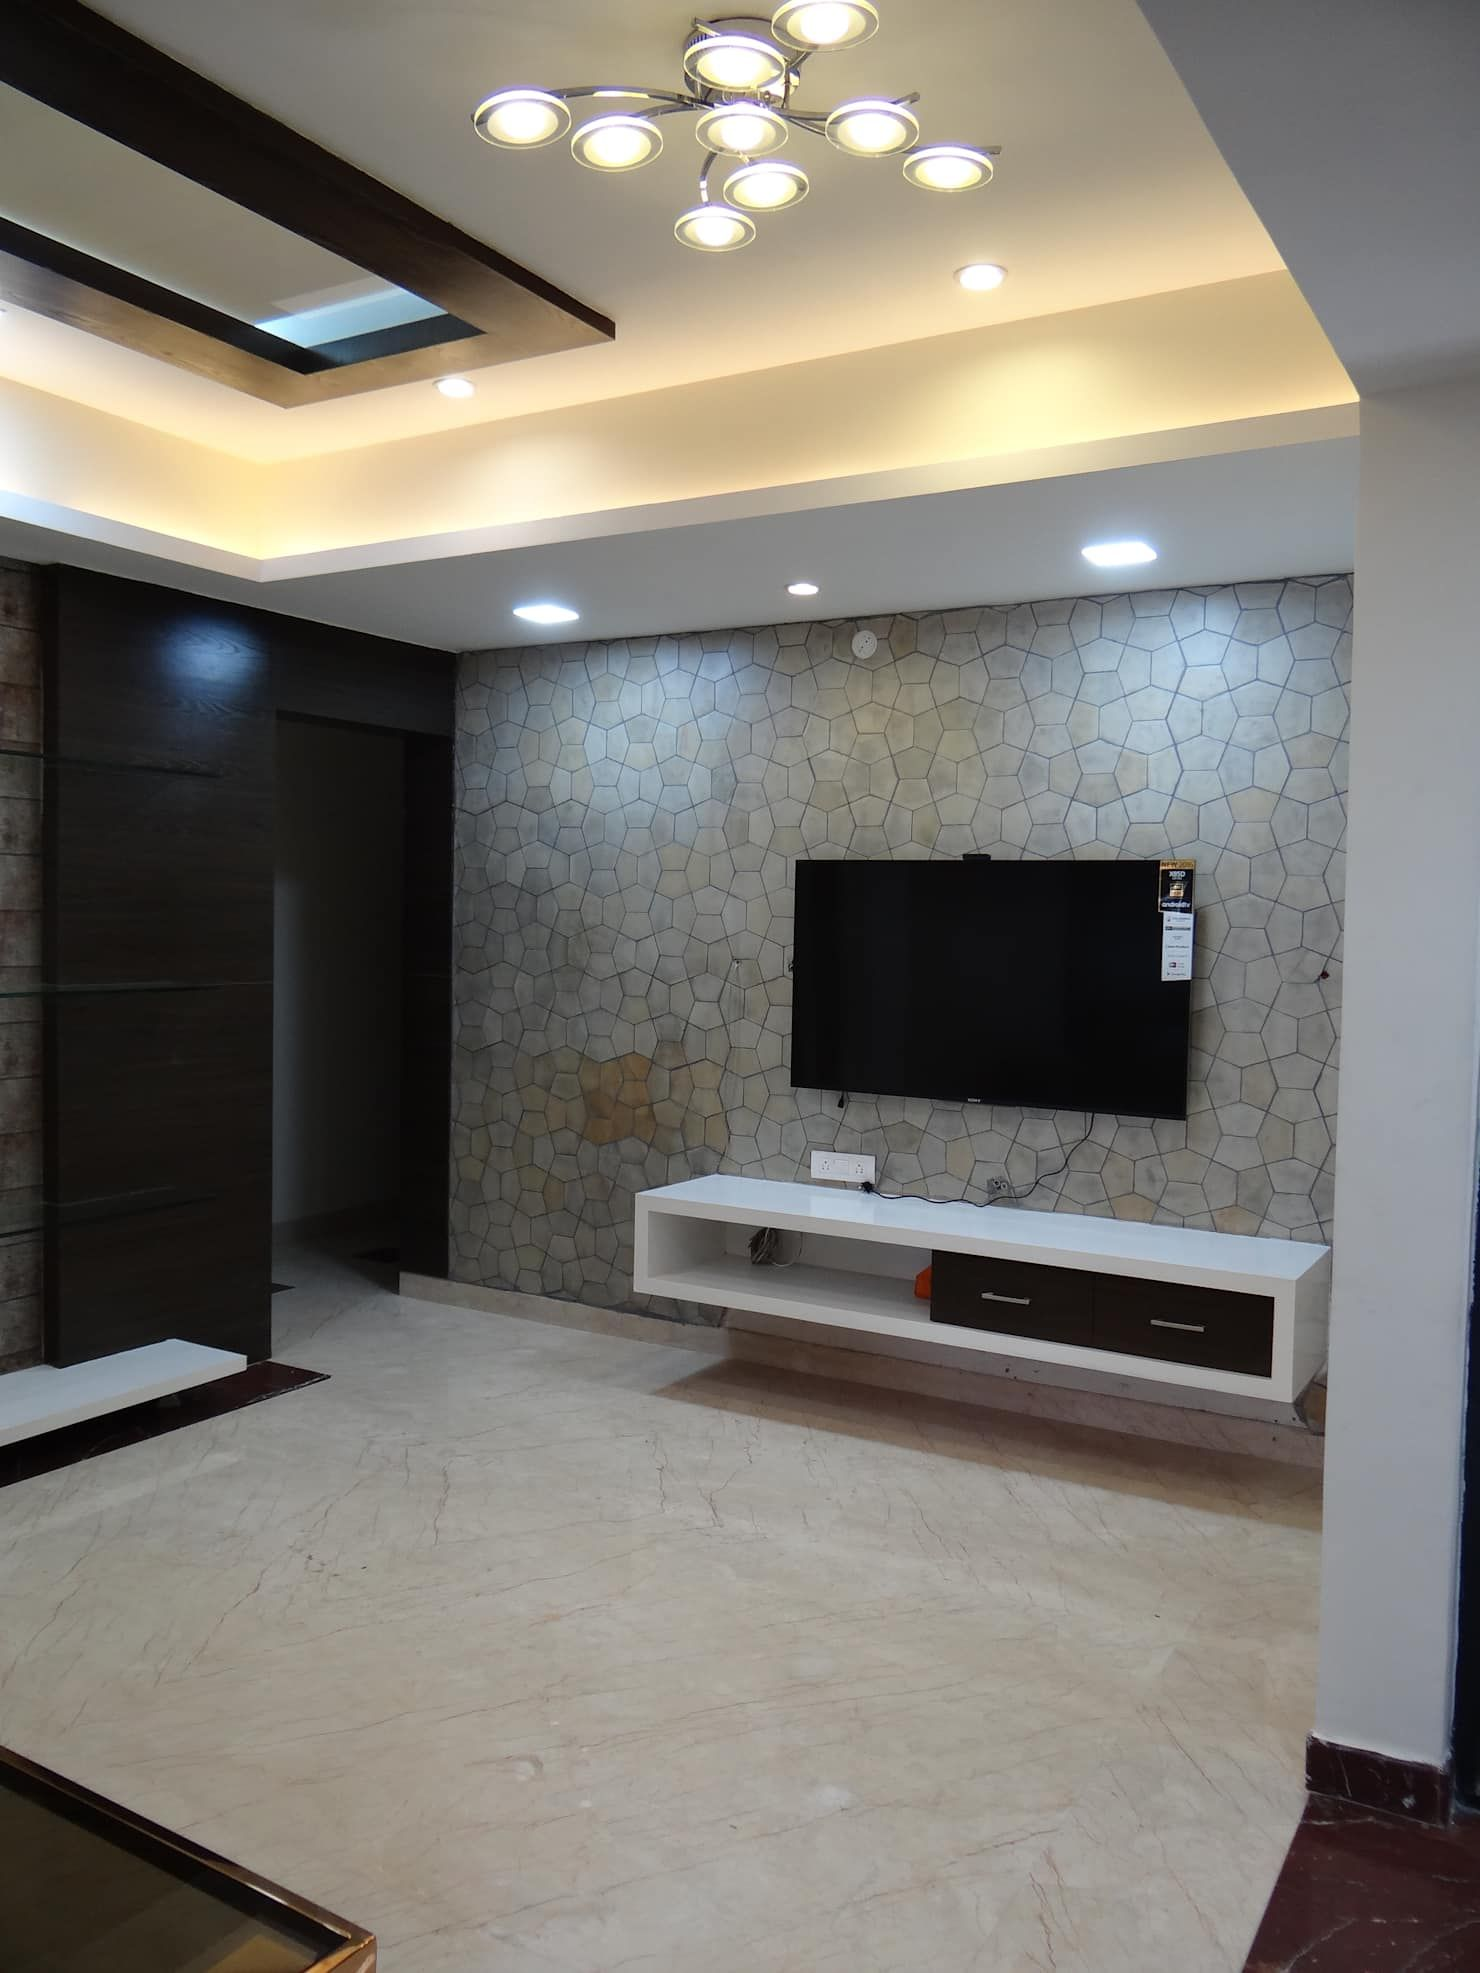 Living Room Cabinet Design Ideas: Tv Wall Cabinet With Stone Cladding Background Modern